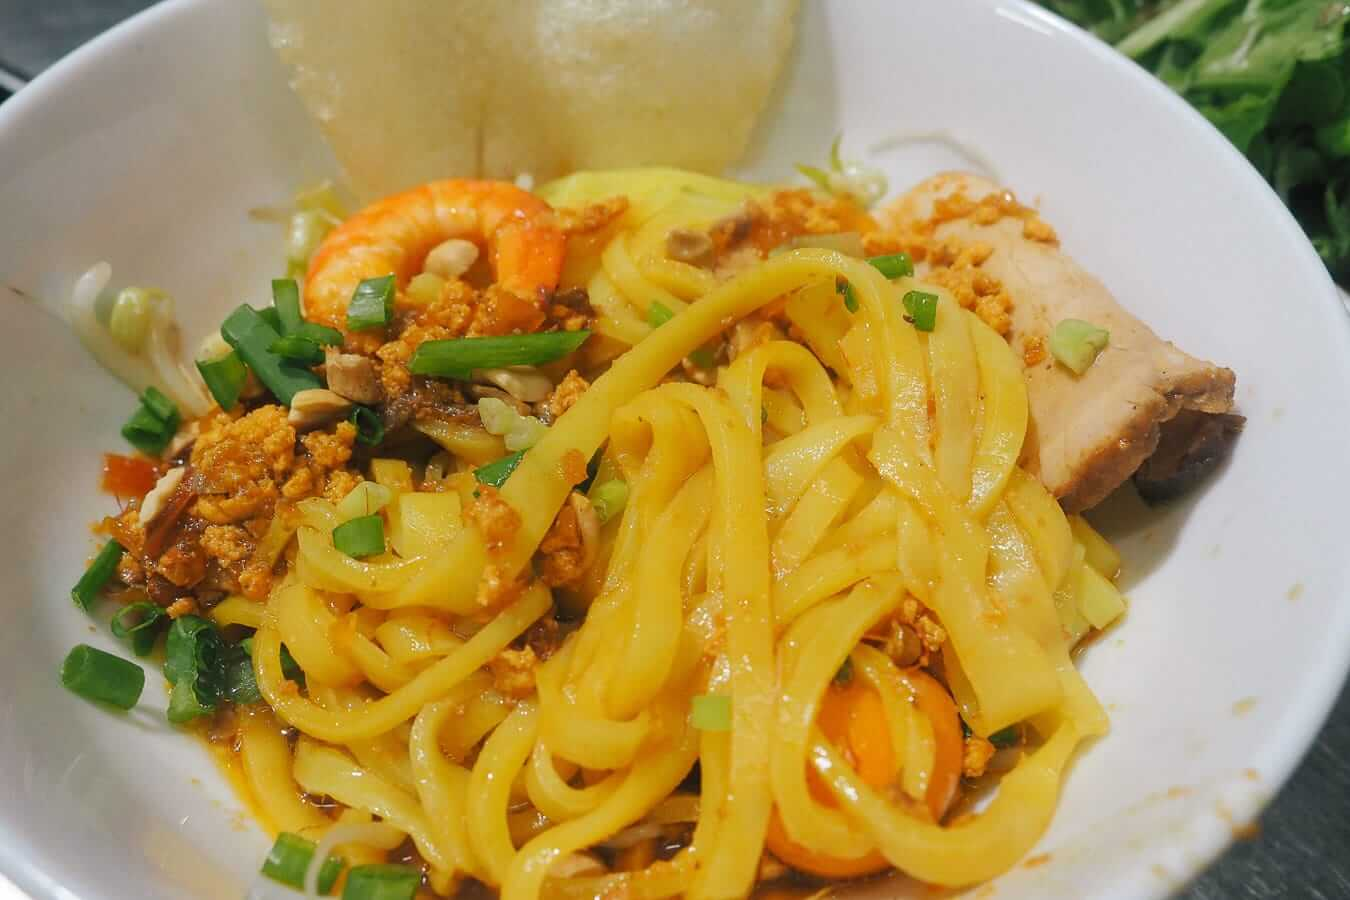 Mi Quang: Hoi An specialities